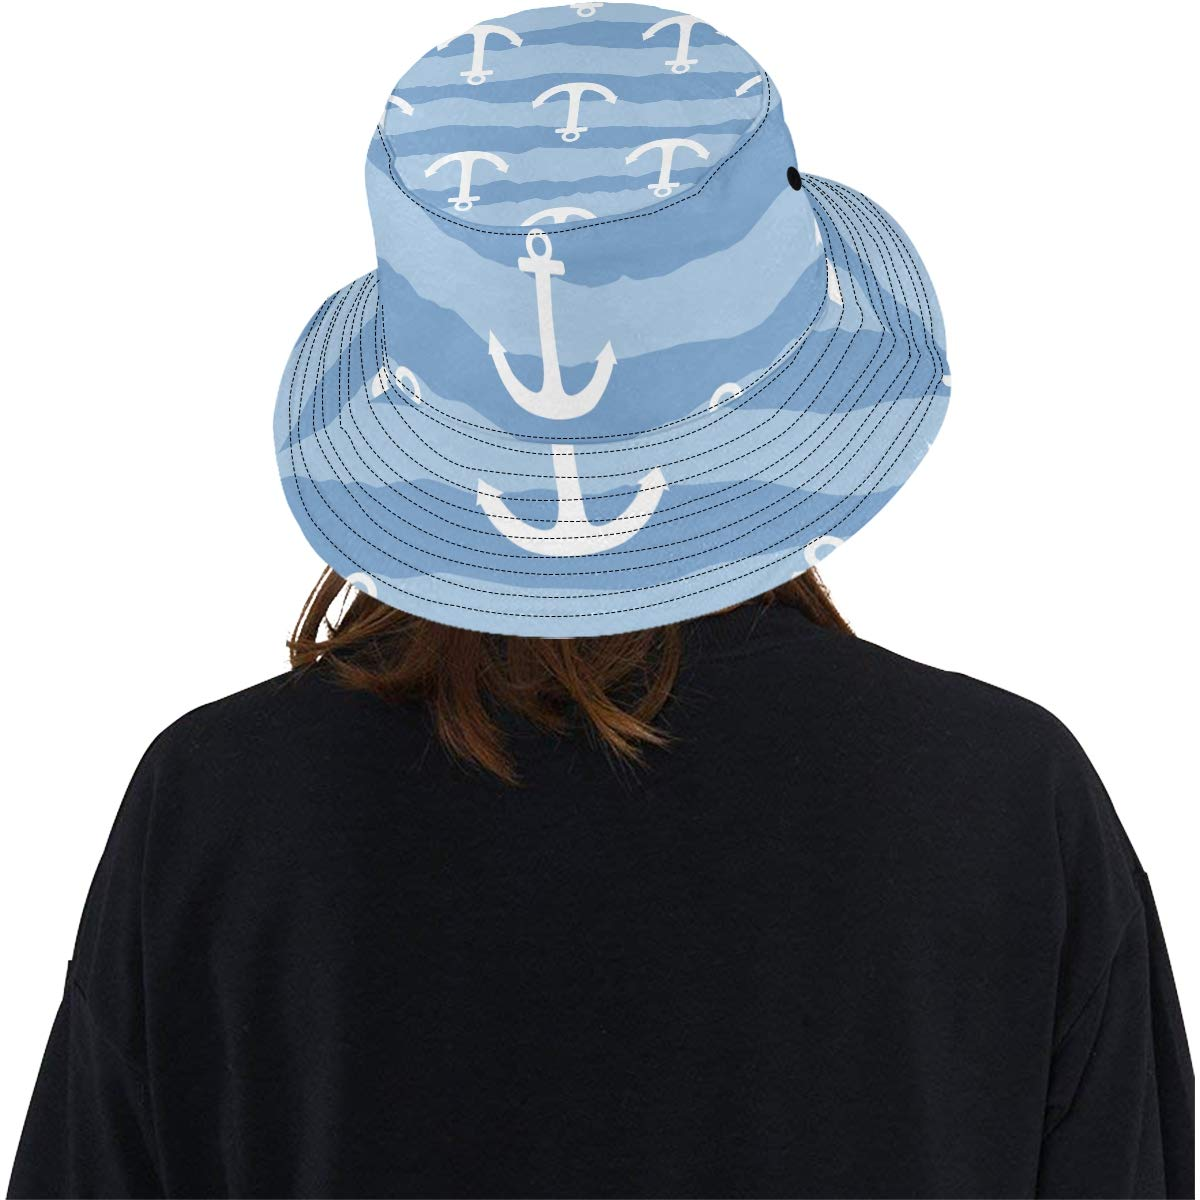 Teens Women and Men with Customize Top Packable Fisherman Cap for Outdoor Travel Marine Sea Anchor Sailor New Summer Unisex Cotton Fashion Fishing Sun Bucket Hats for Kid